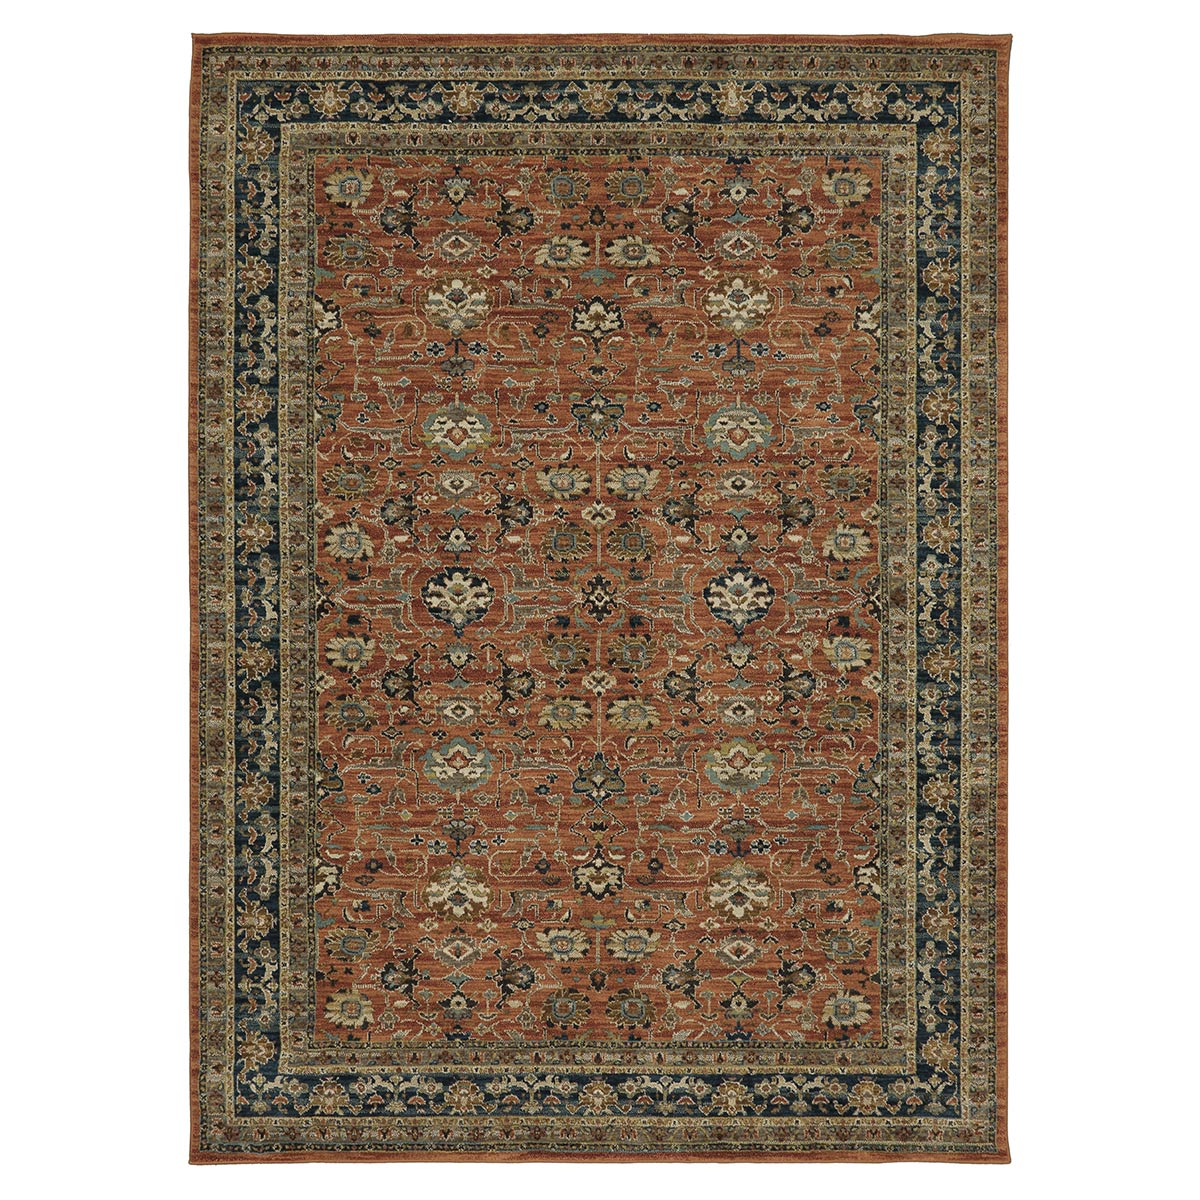 Terracotta Dreams Rug - 3 x 5